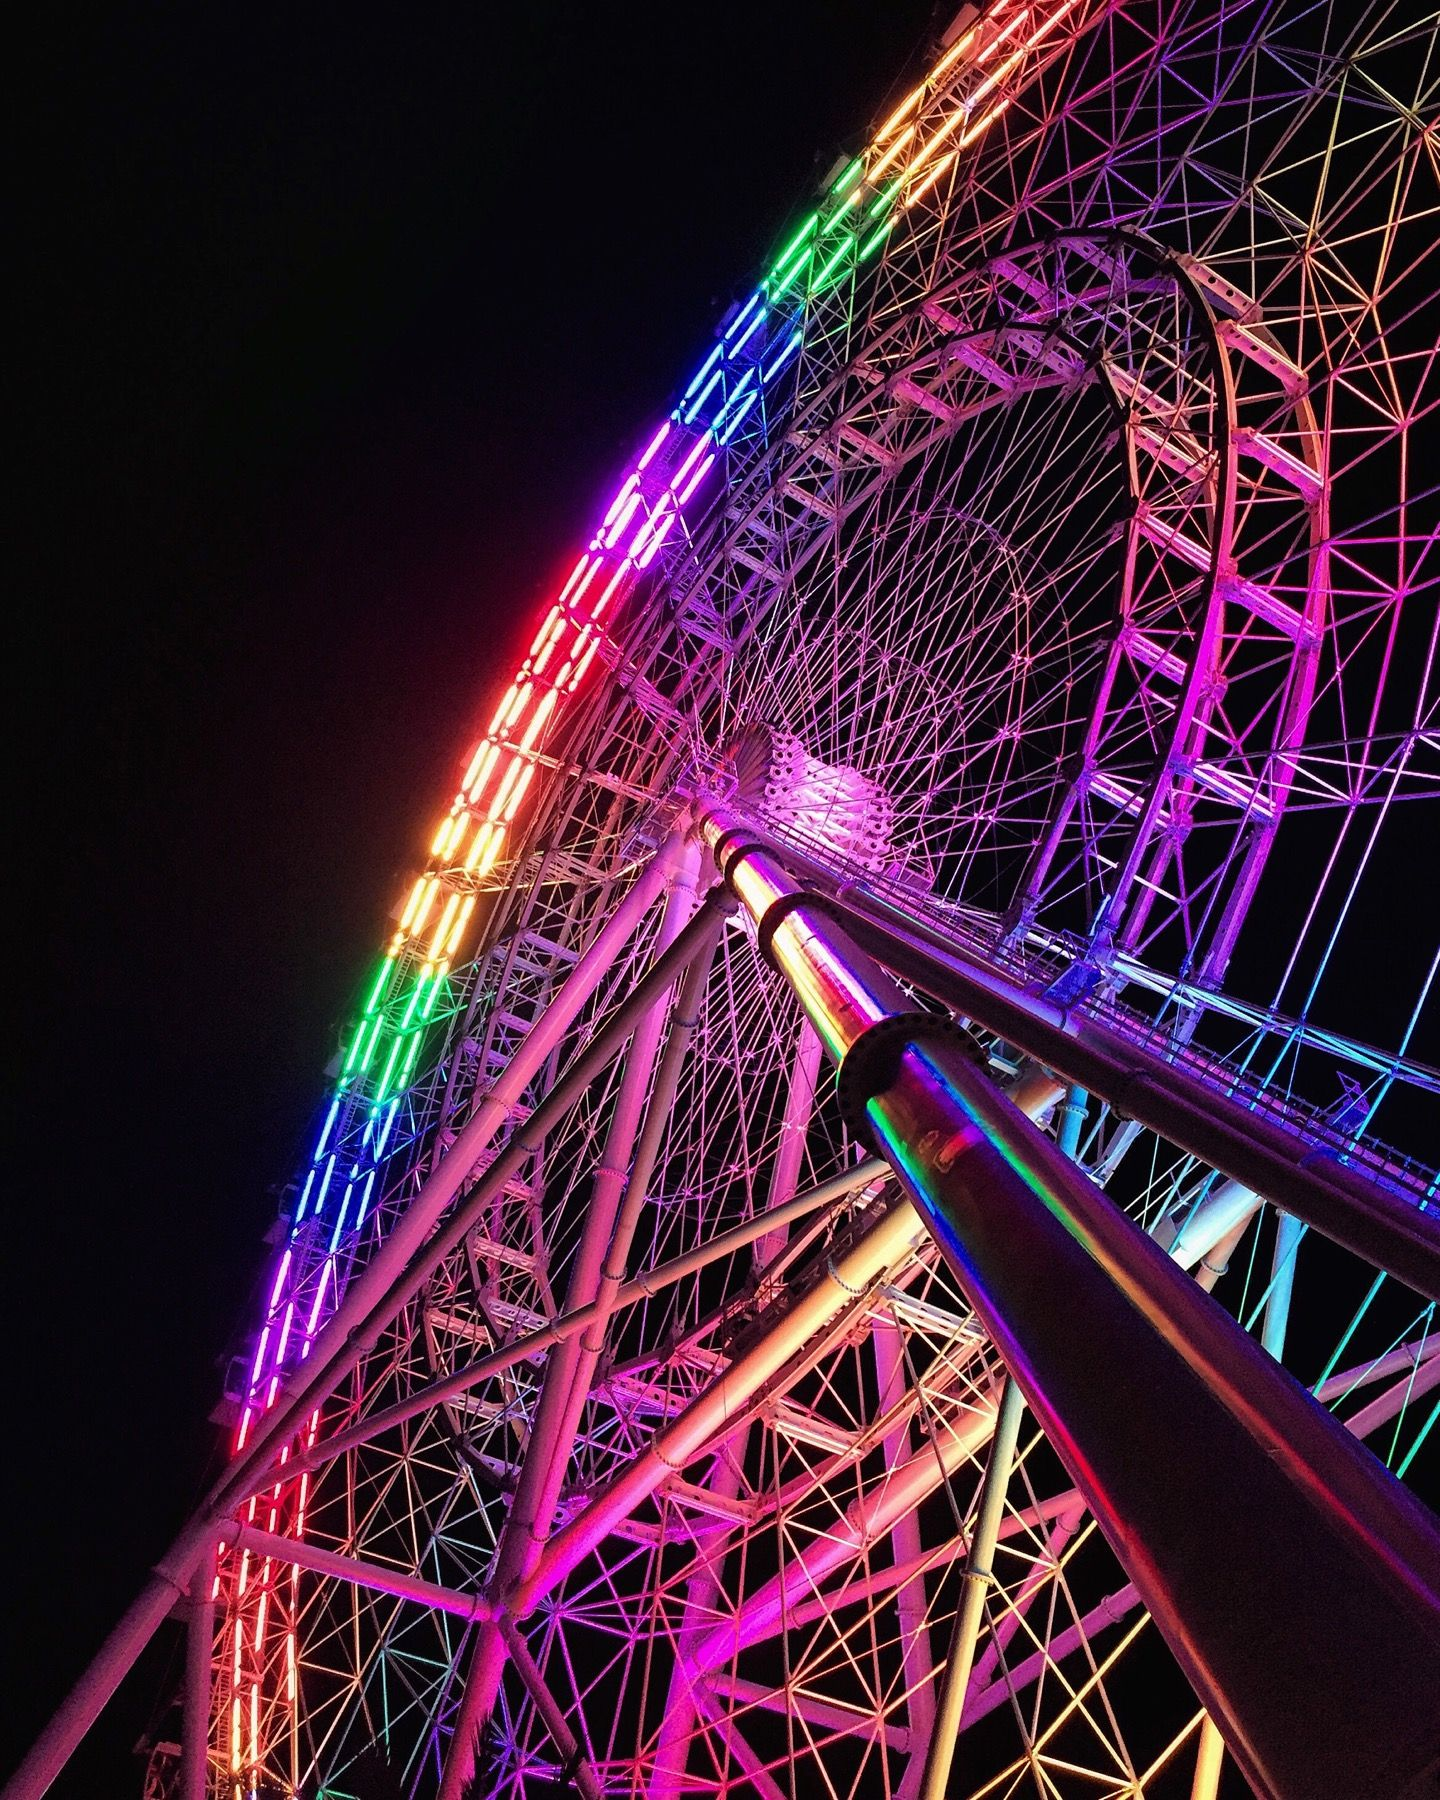 The Orlando Eye Orlando eye, Neon wallpaper, Summer plans